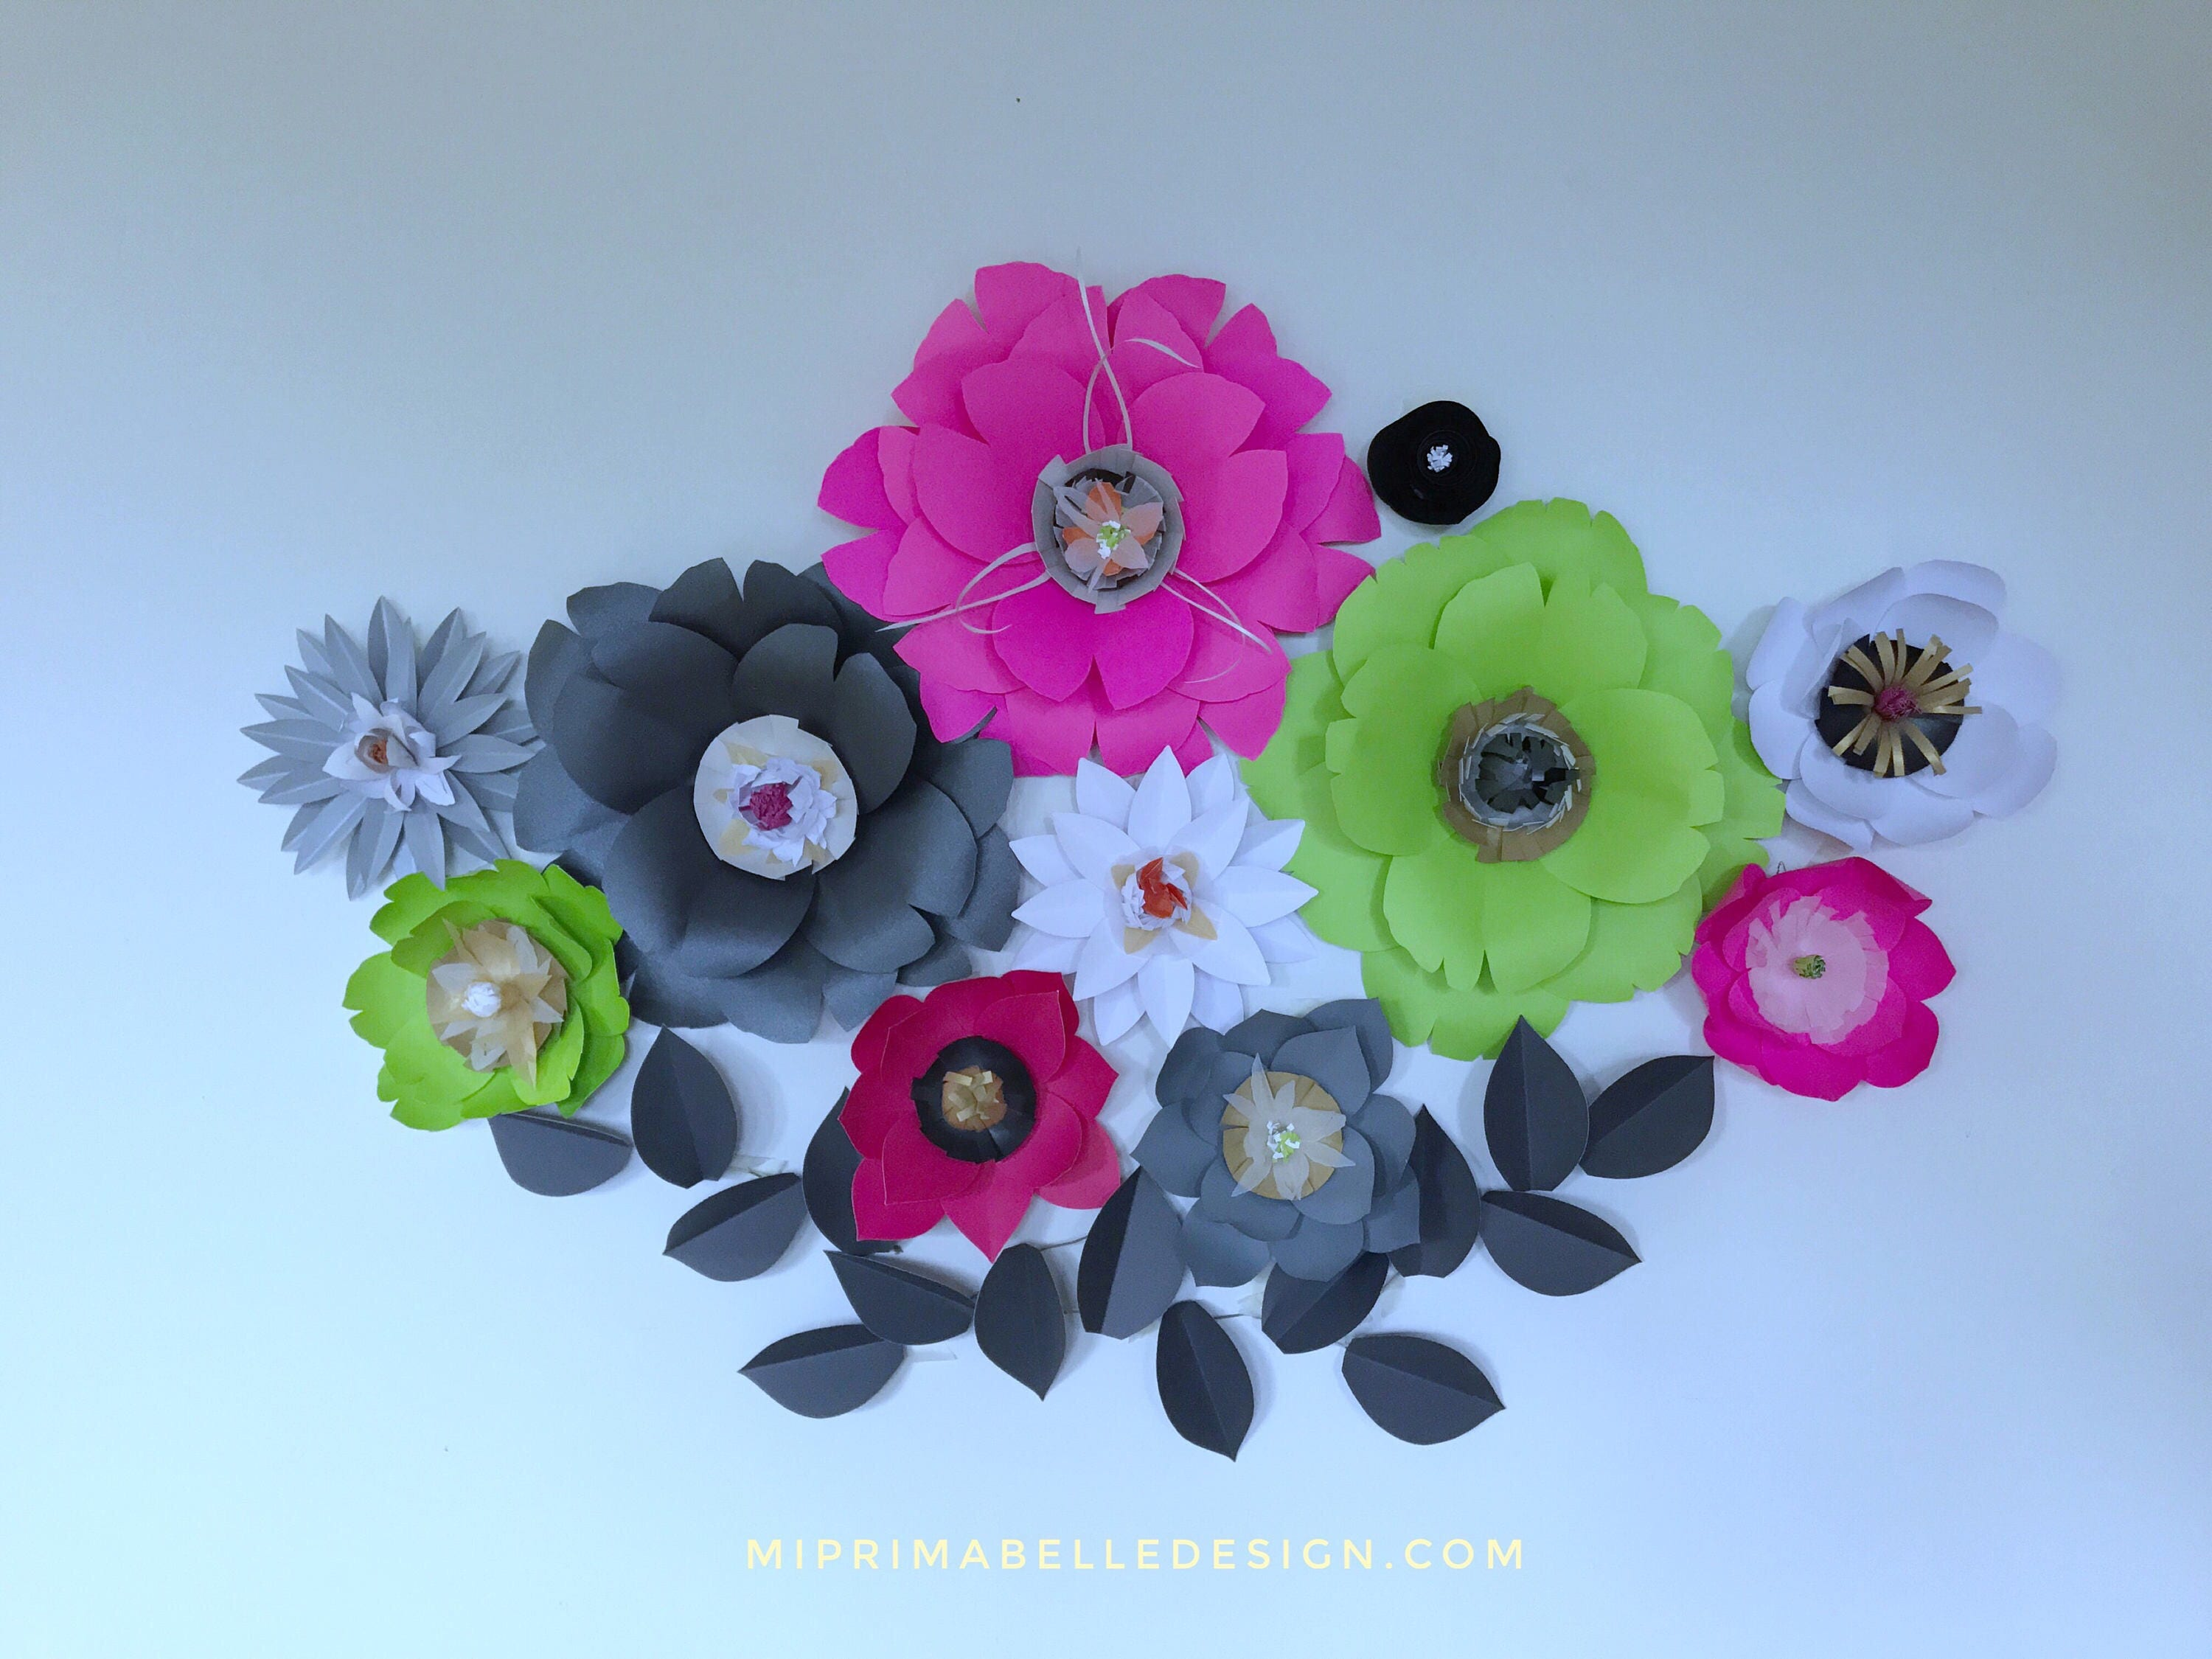 Mint green paper flowers wall decor neon pink paper flowers wall gallery photo gallery photo amipublicfo Choice Image